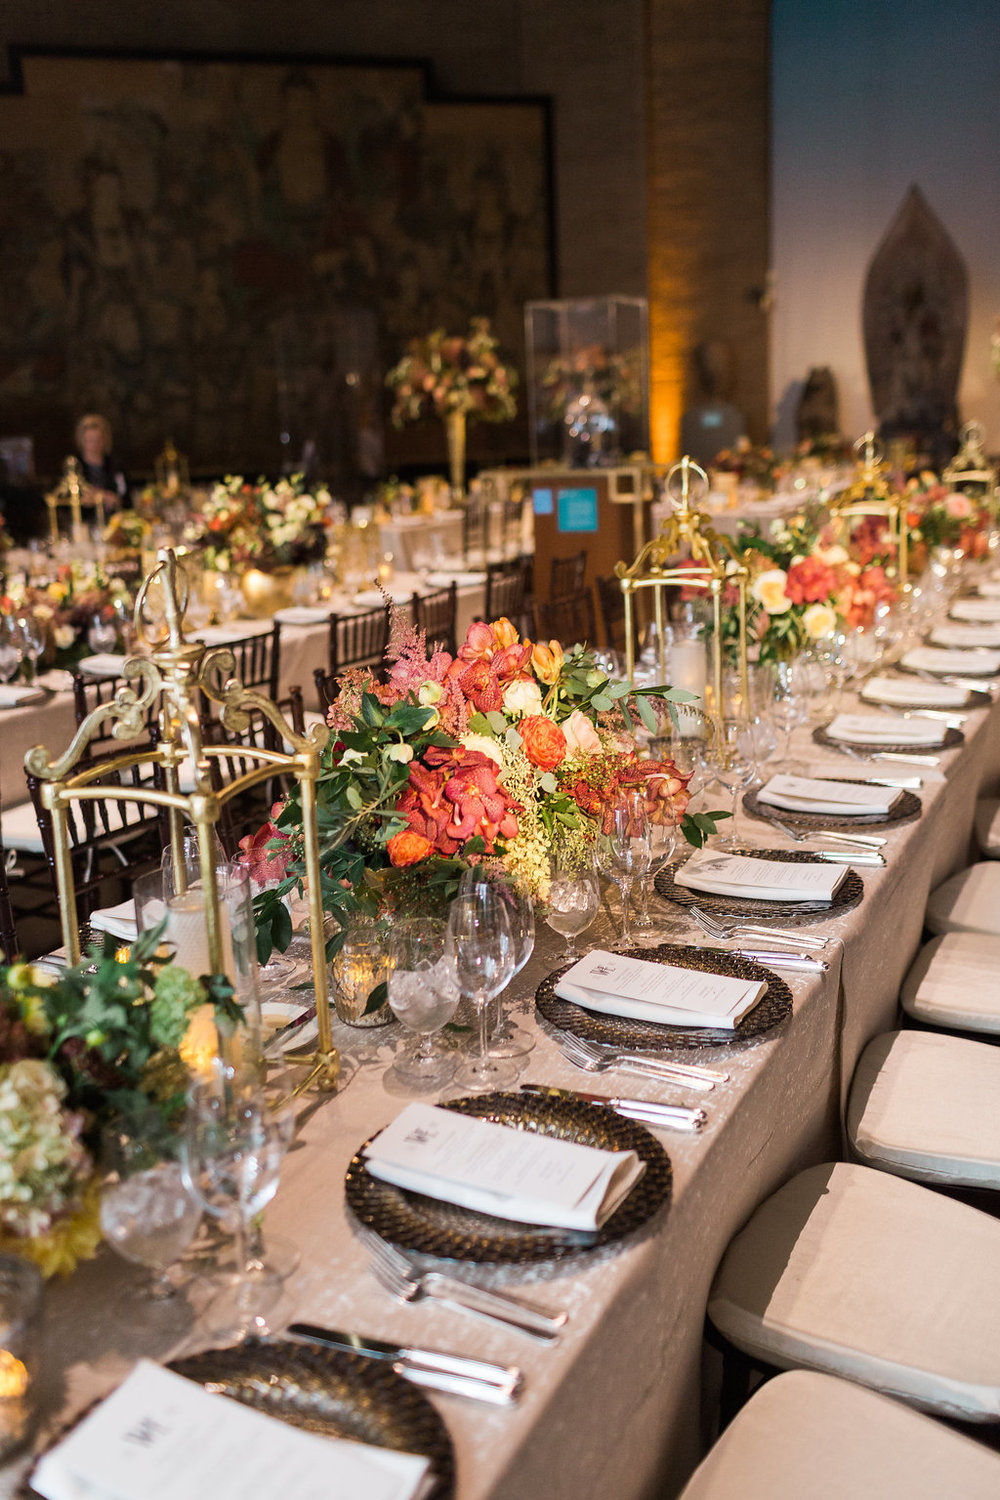 Driftwood colored linens,  mahogany chiavari chairs and luxe gold patterned charger plates were added to enhance the tablescape.  Menus were provided for each guest for tableside ordering.  Guest were able to select from three entrees from Catering by Restaurant Associates